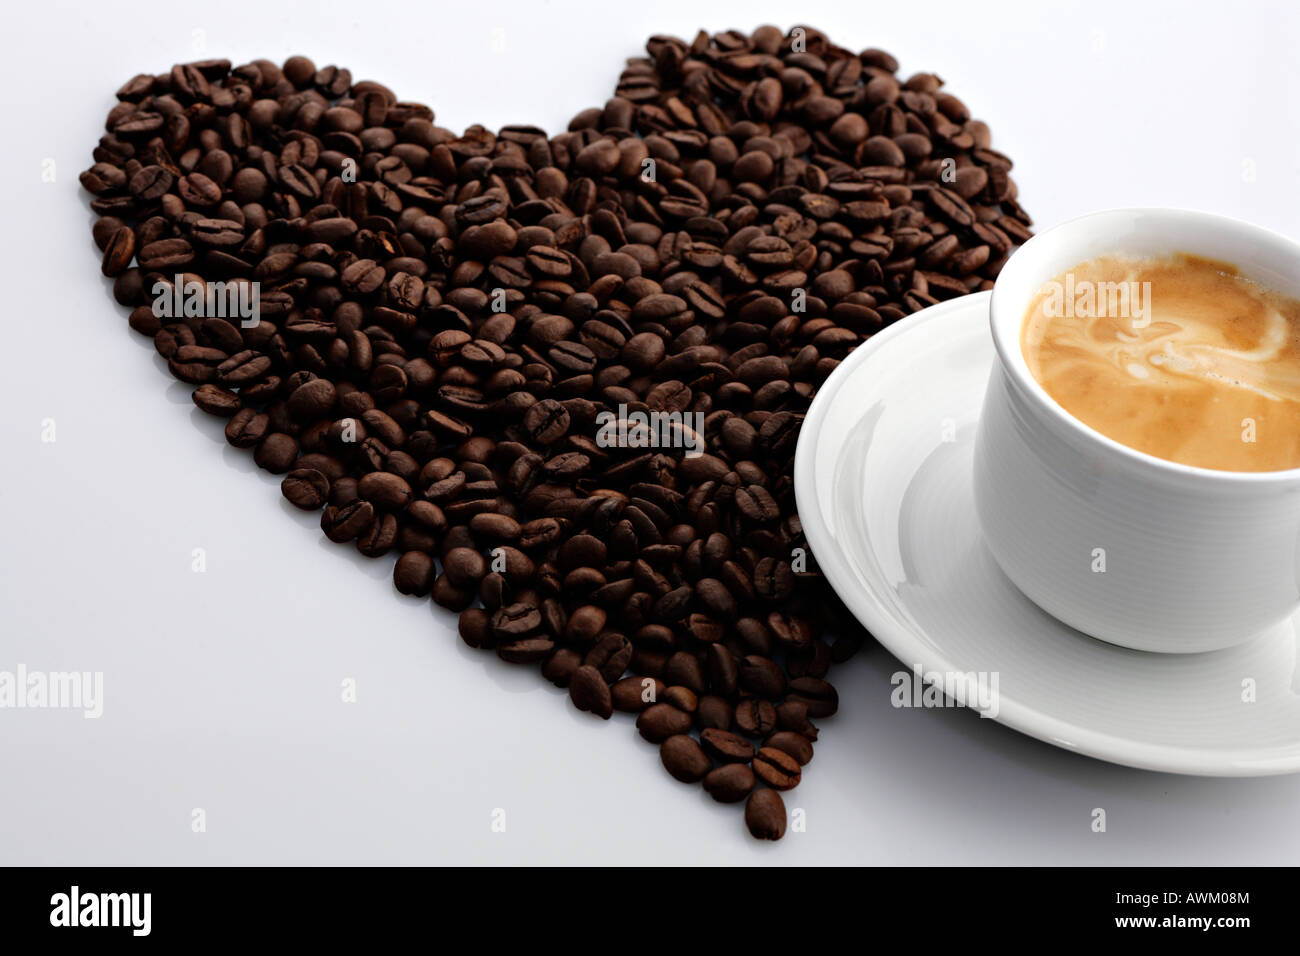 Coffee beans in the shape of a heart beside a cup of coffee Stock Photo